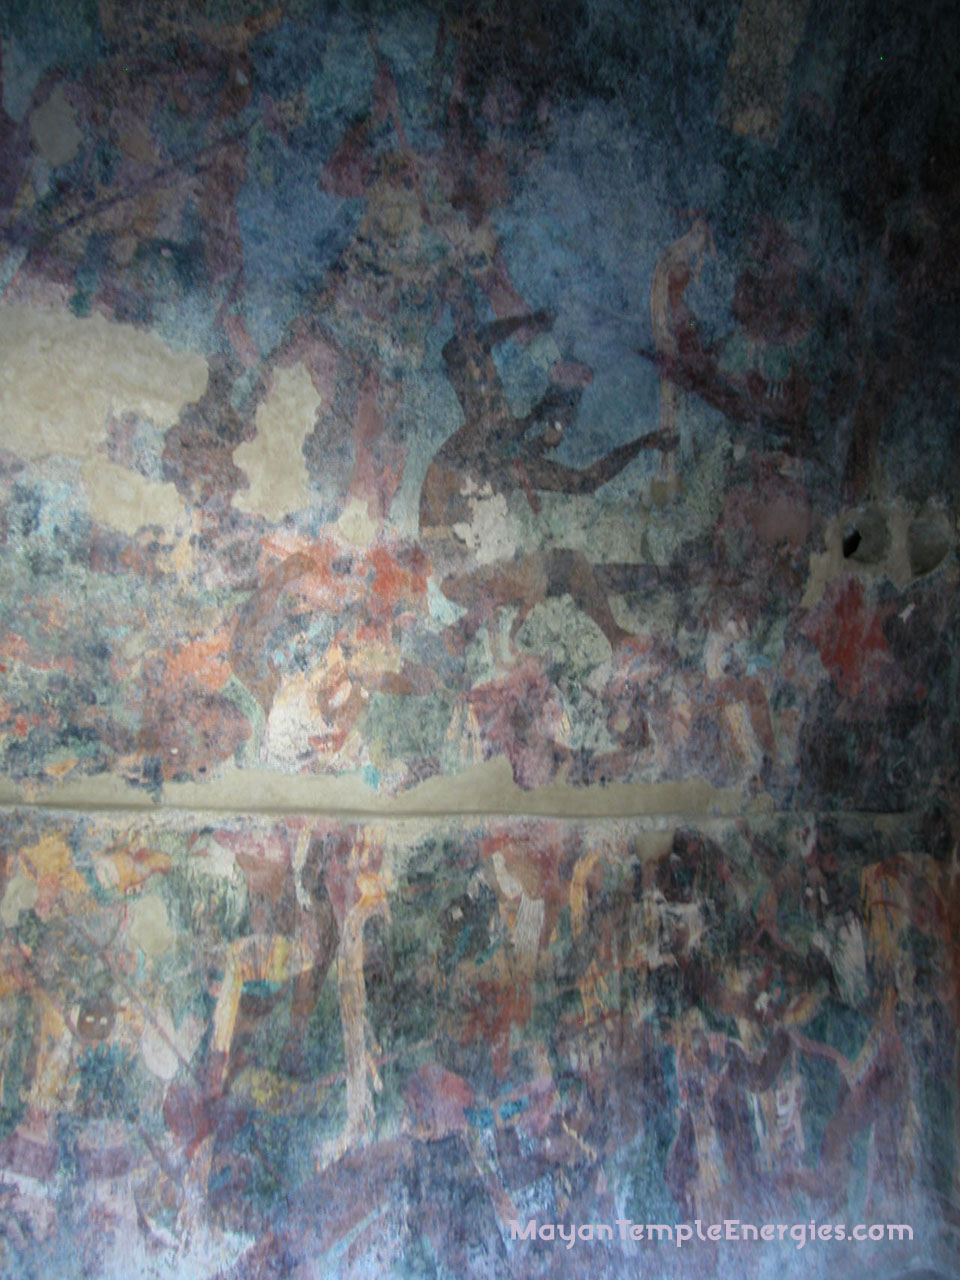 Balamku mayan temple in chiapas mexico photo gallery for Bonampak mural painting